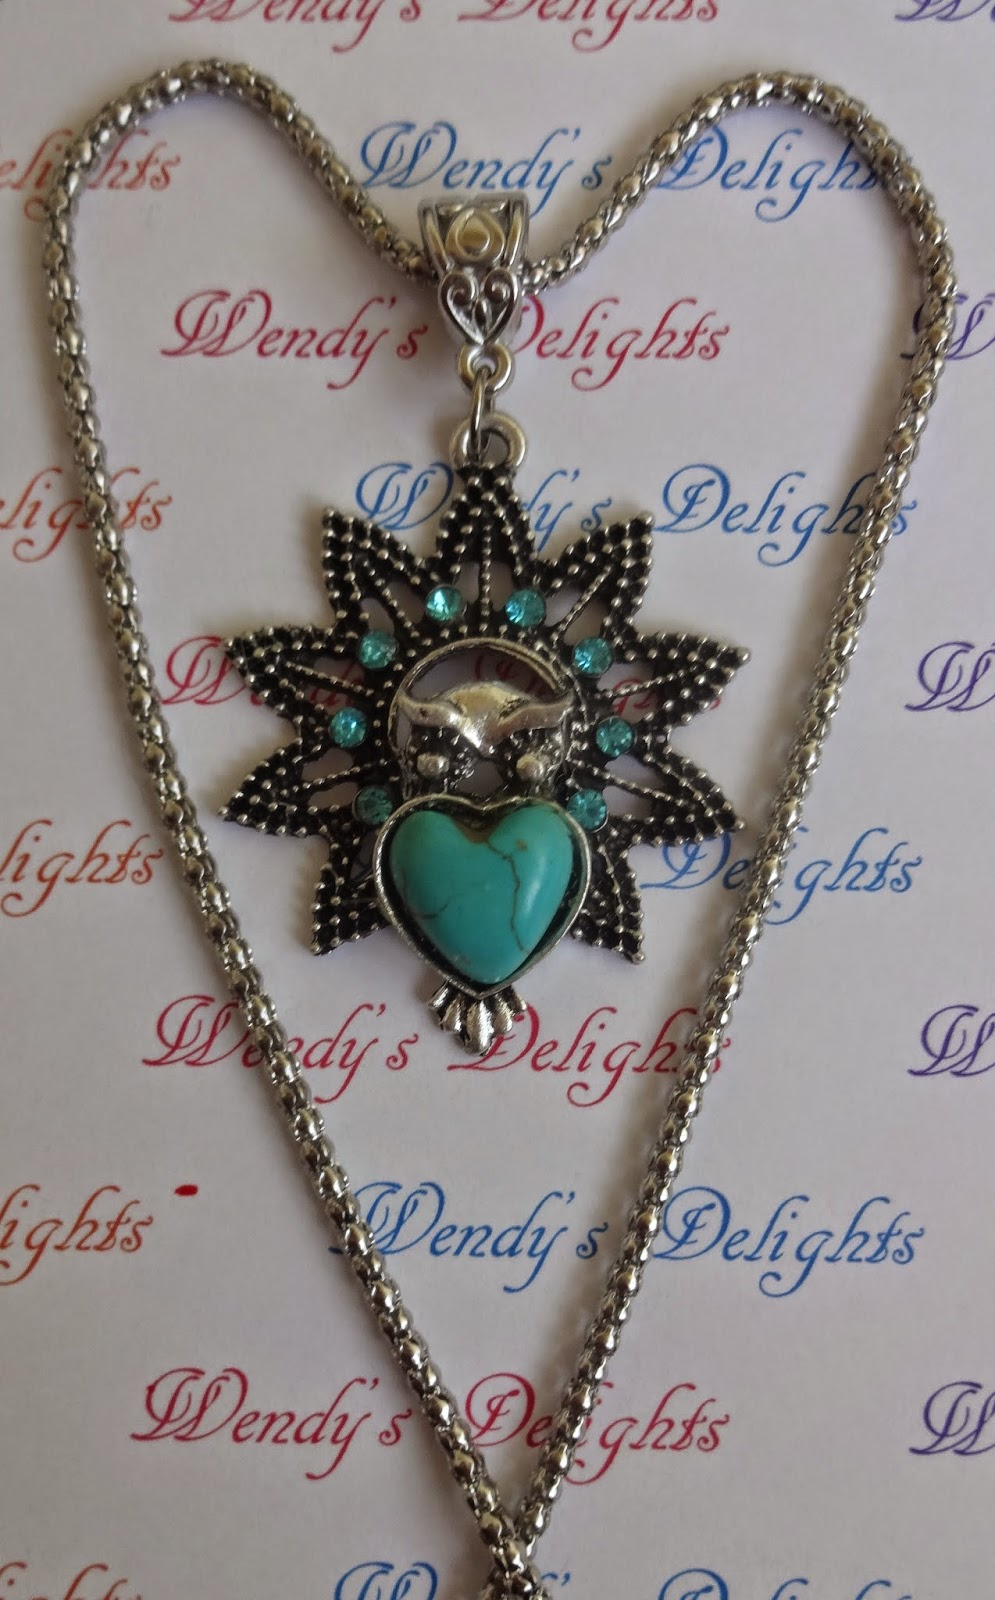 Wendy's Delights: Blue Turquoise Owl Pendant & Necklace